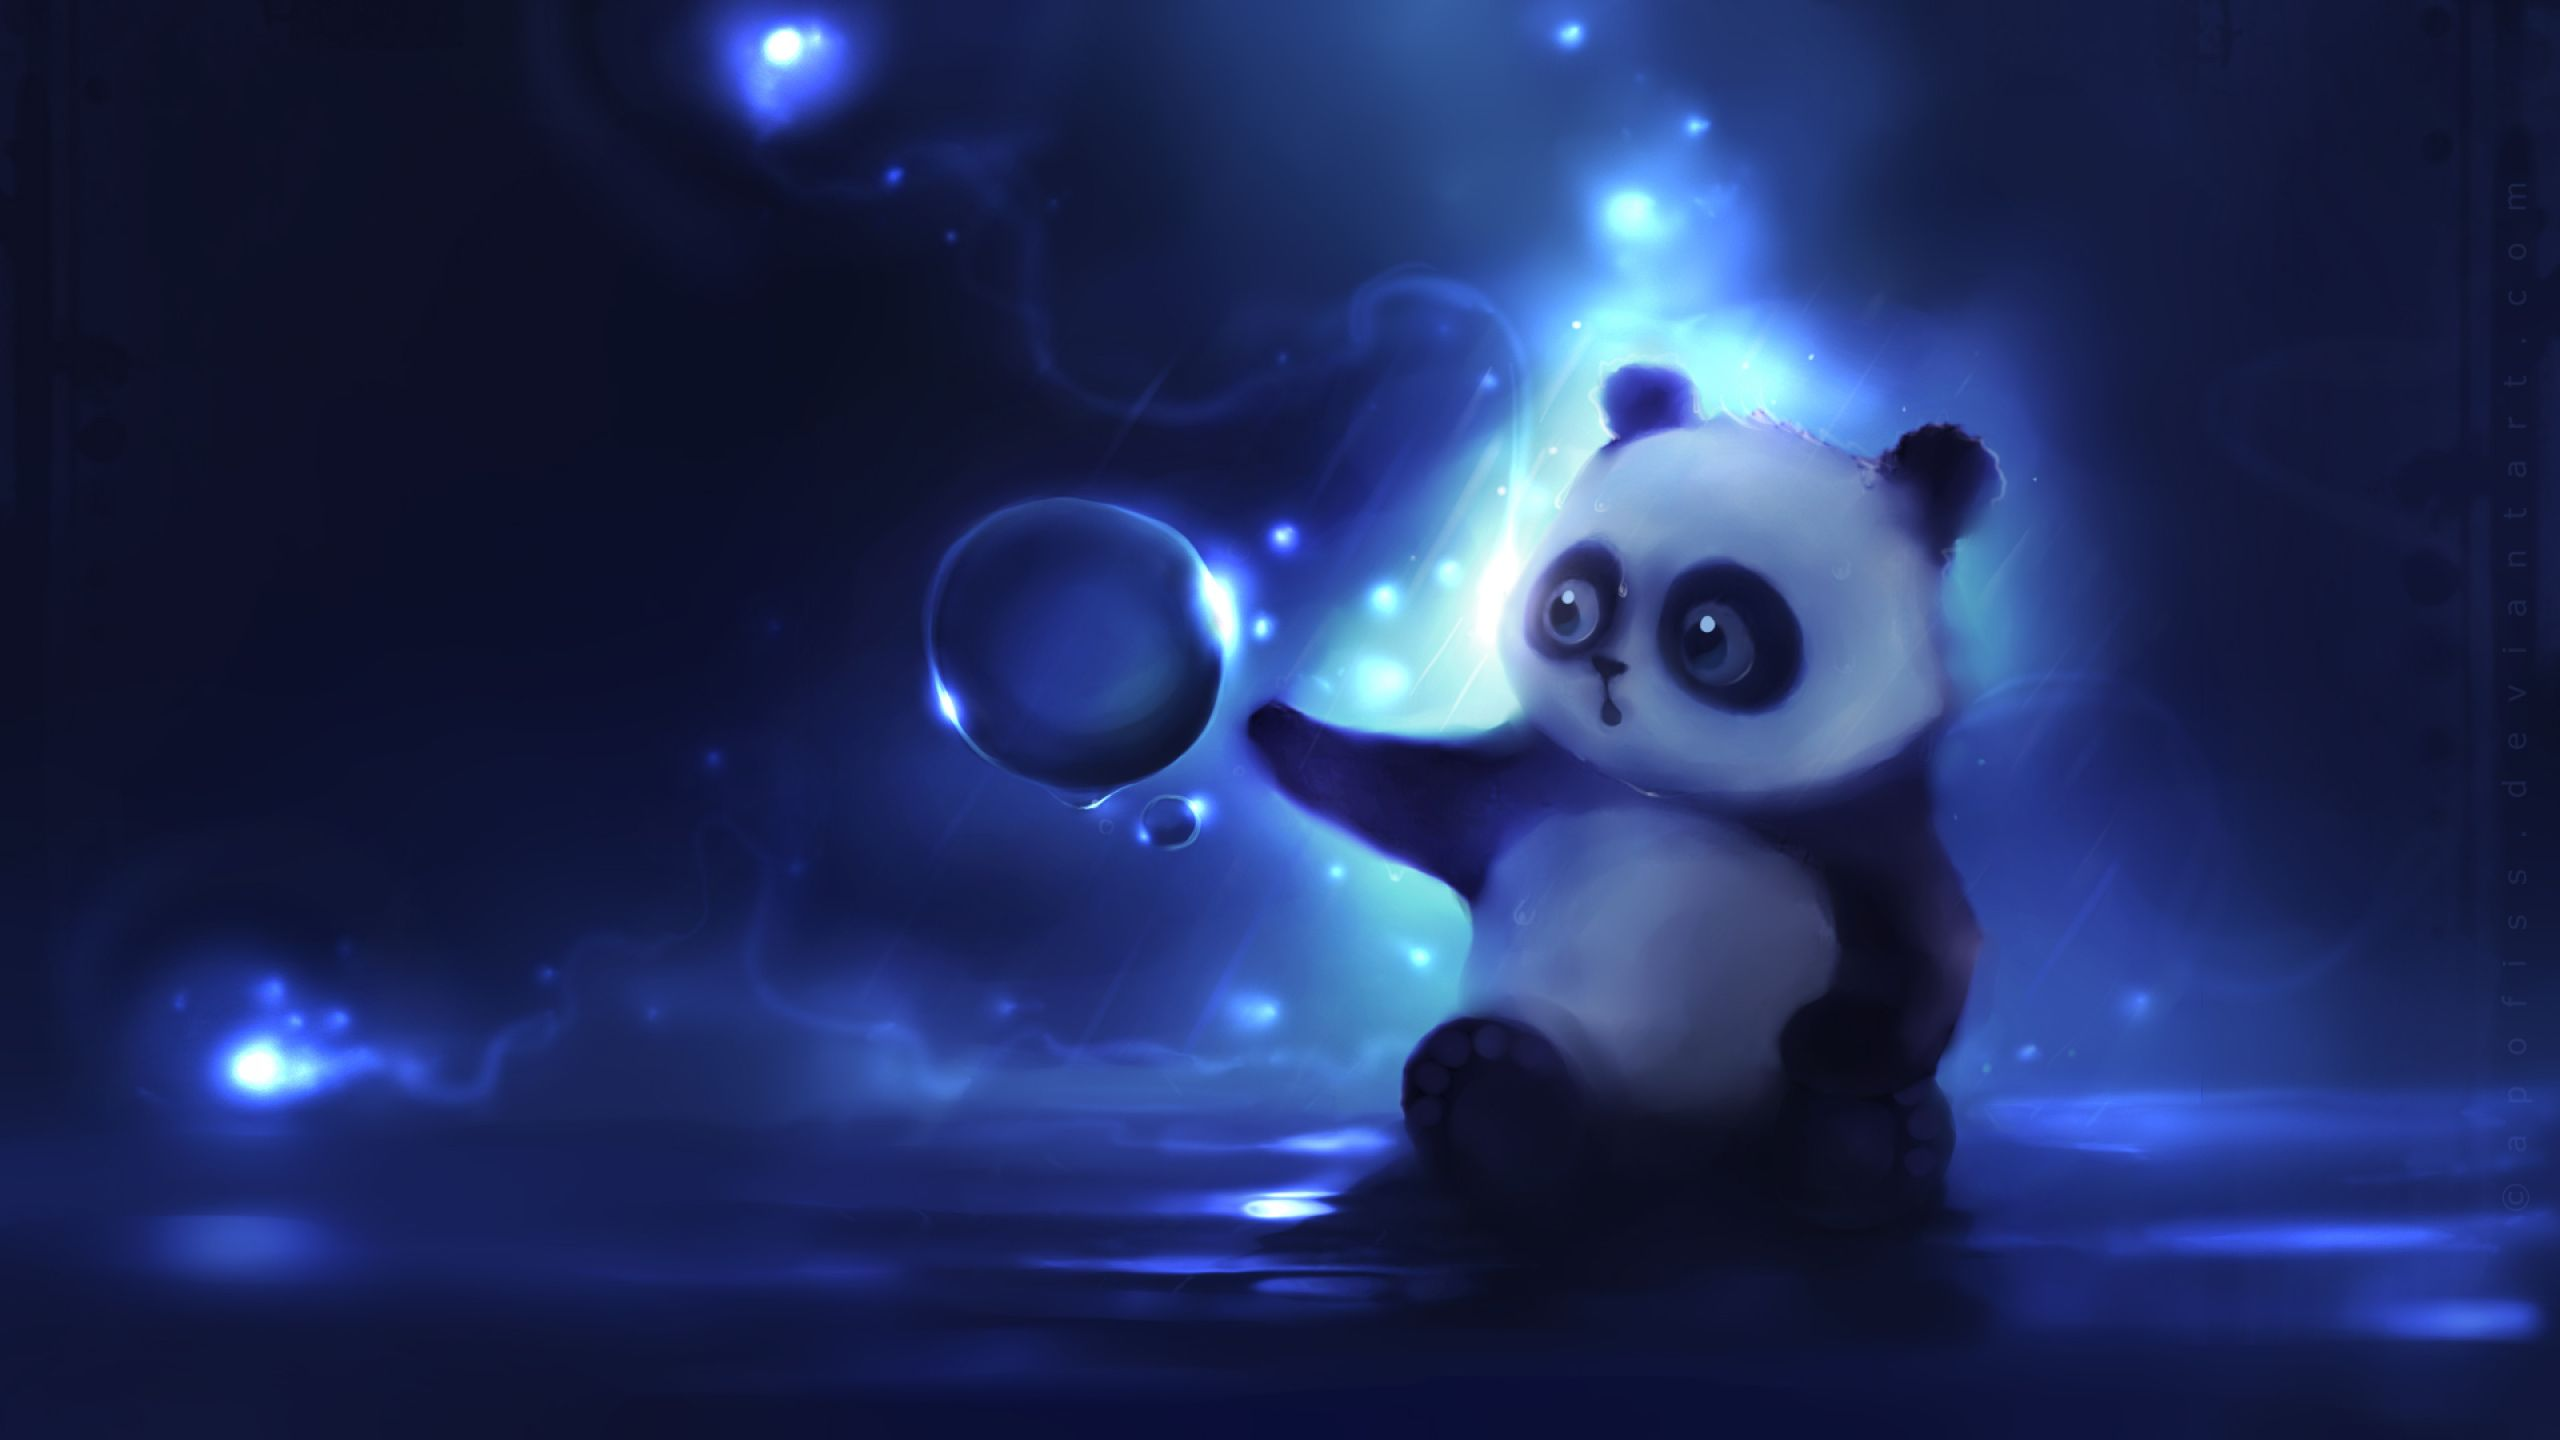 Mac iMac 27 Panda Wallpapers HD, Desktop Backgrounds 2560x1440 ...